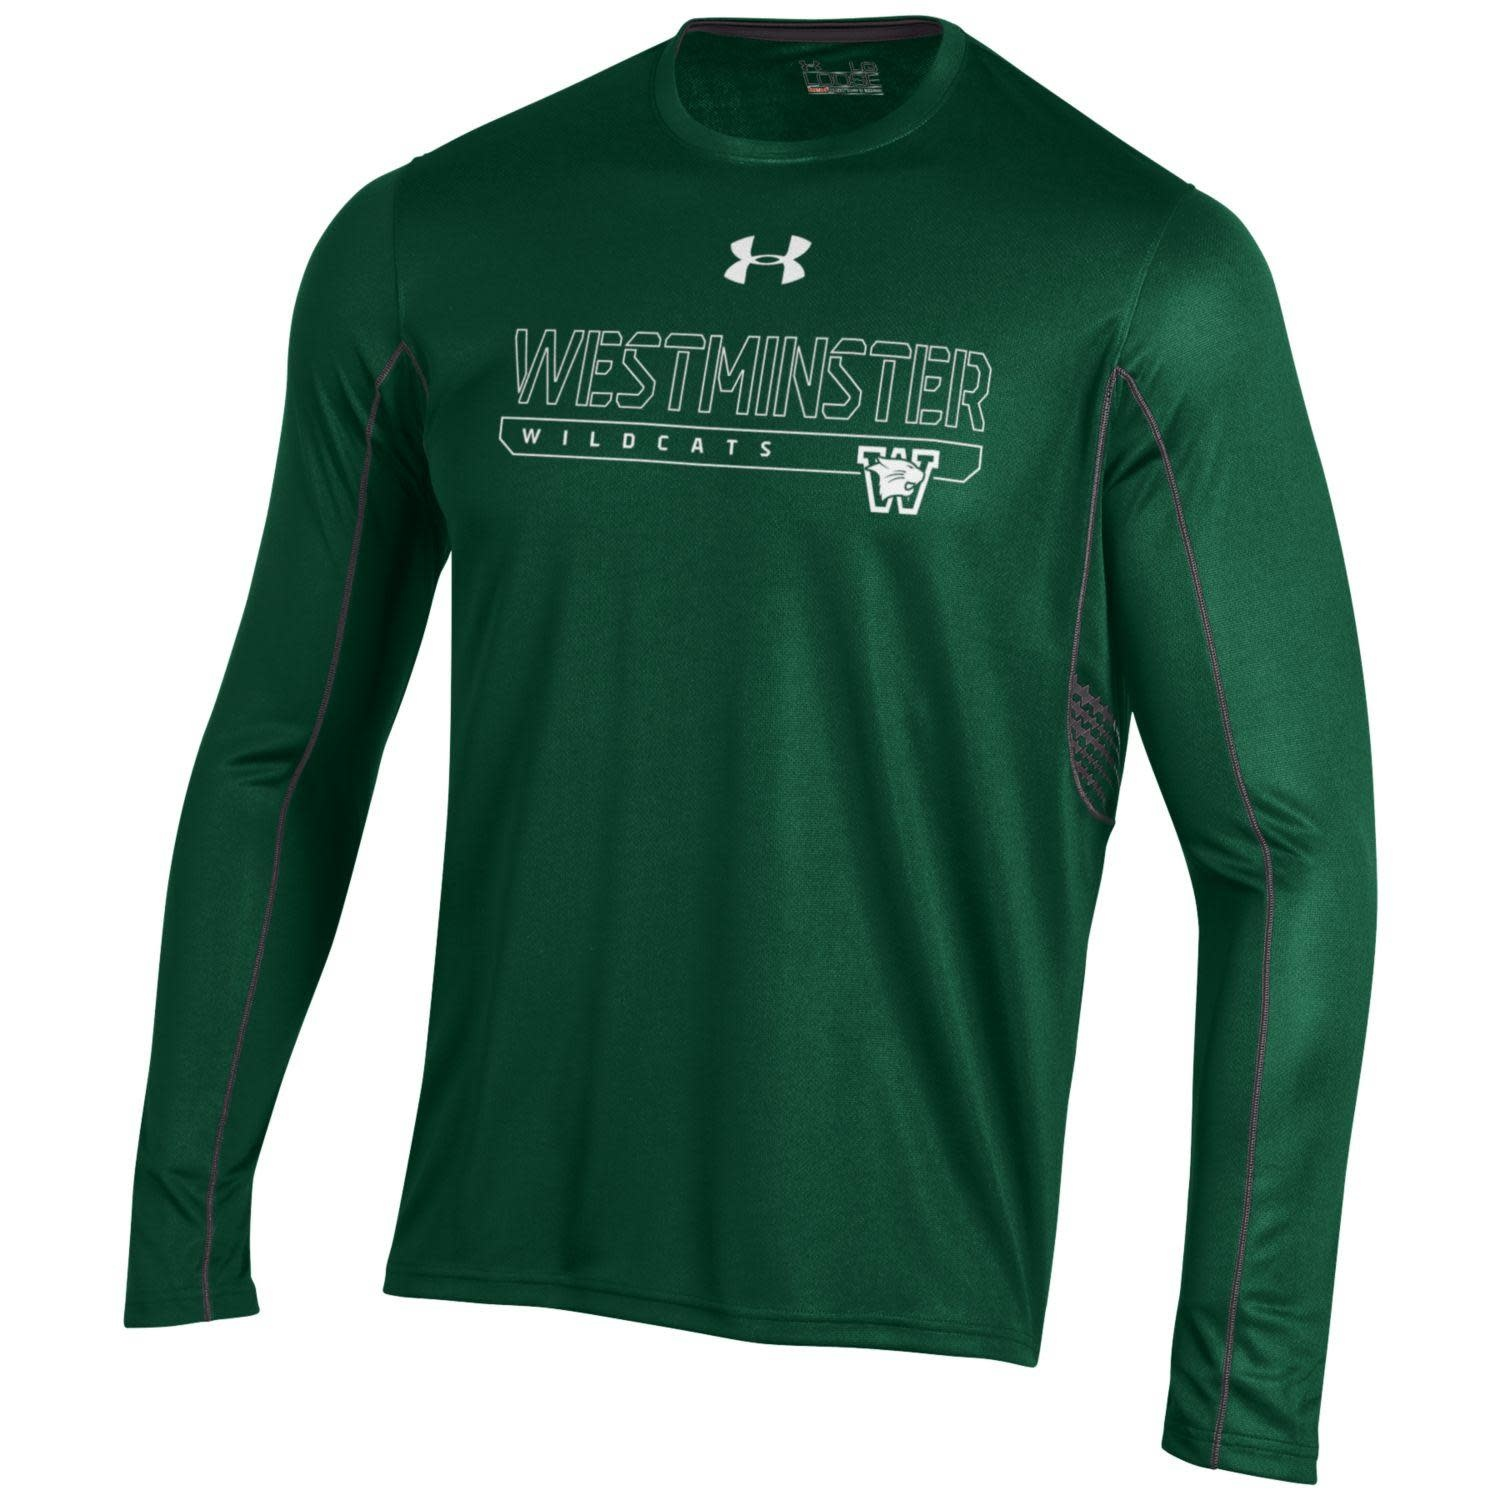 T: UA Dri-fit Long Sleeve Forest w/gray stripes, w/white West Wildcats, gray design on sides